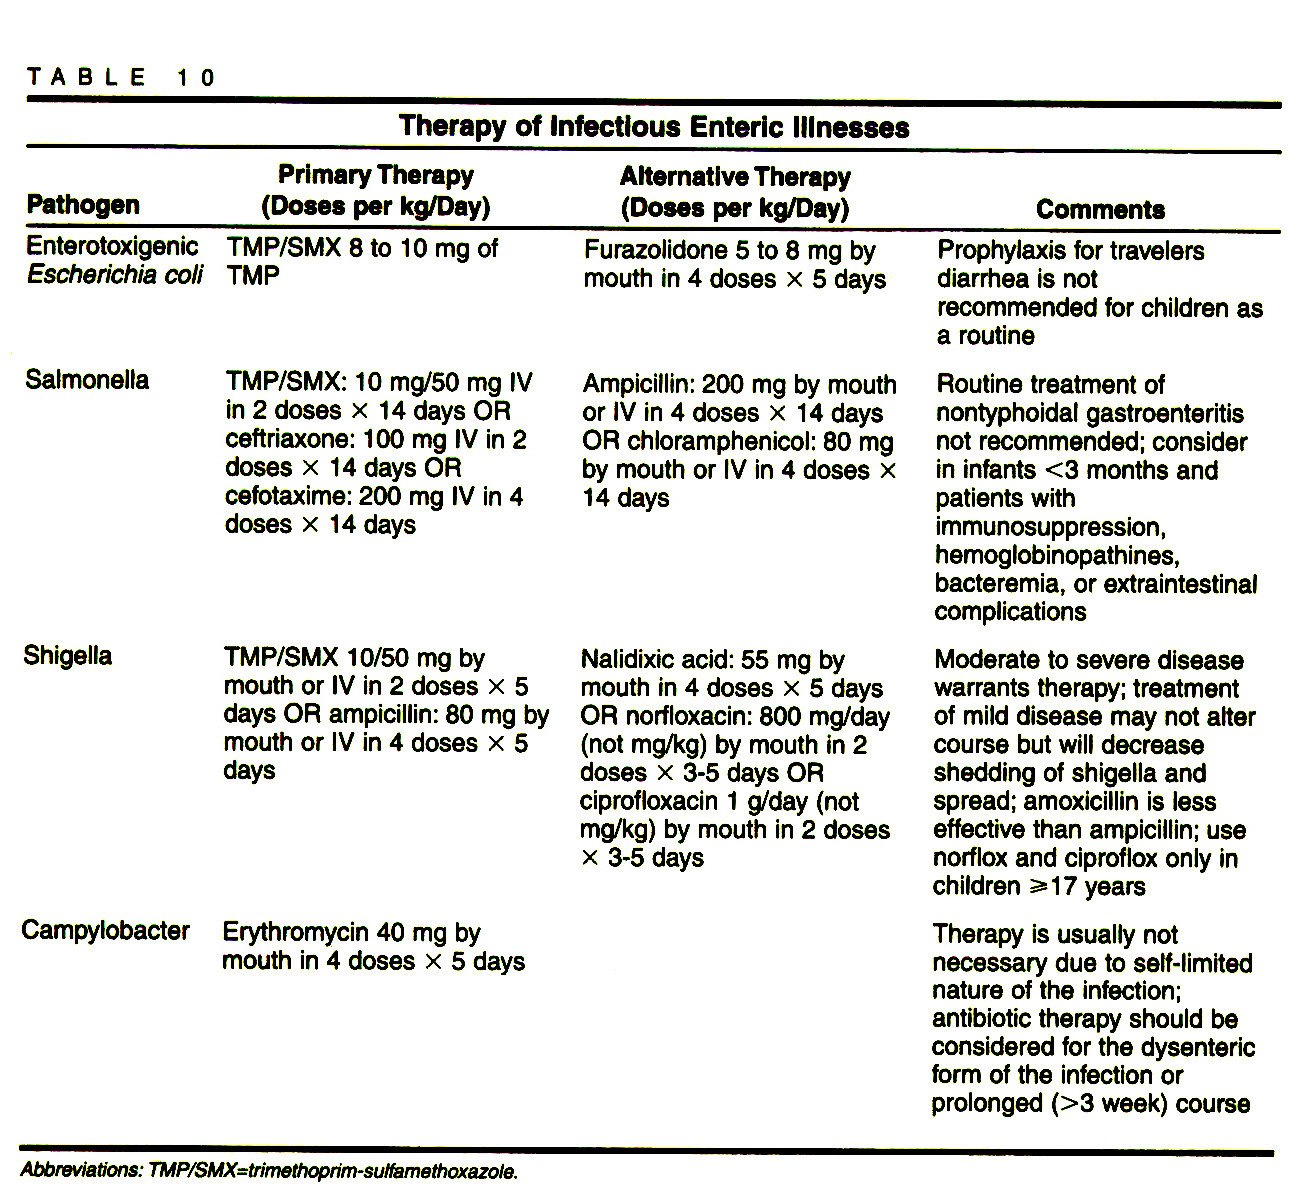 TABLE 10Therapy of Infectious Enteric Illnesses